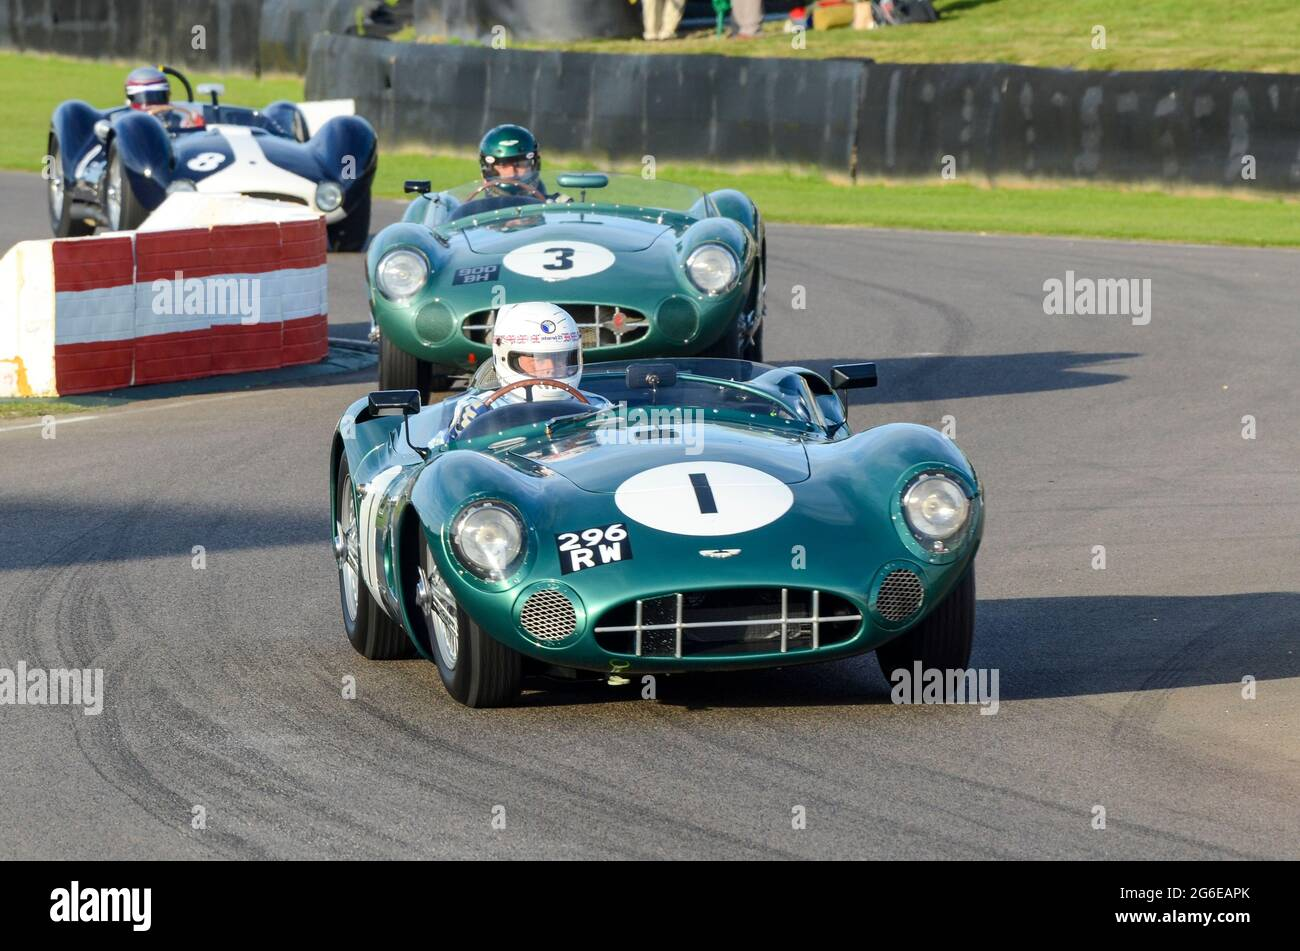 aston-martin-dbr1-classic-sports-car-vintage-racing-car-competing-in-the-sussex-trophy-at-the-goodwood-revival-historic-event-uk-cars-chasing-down-2G6EAPK.jpg